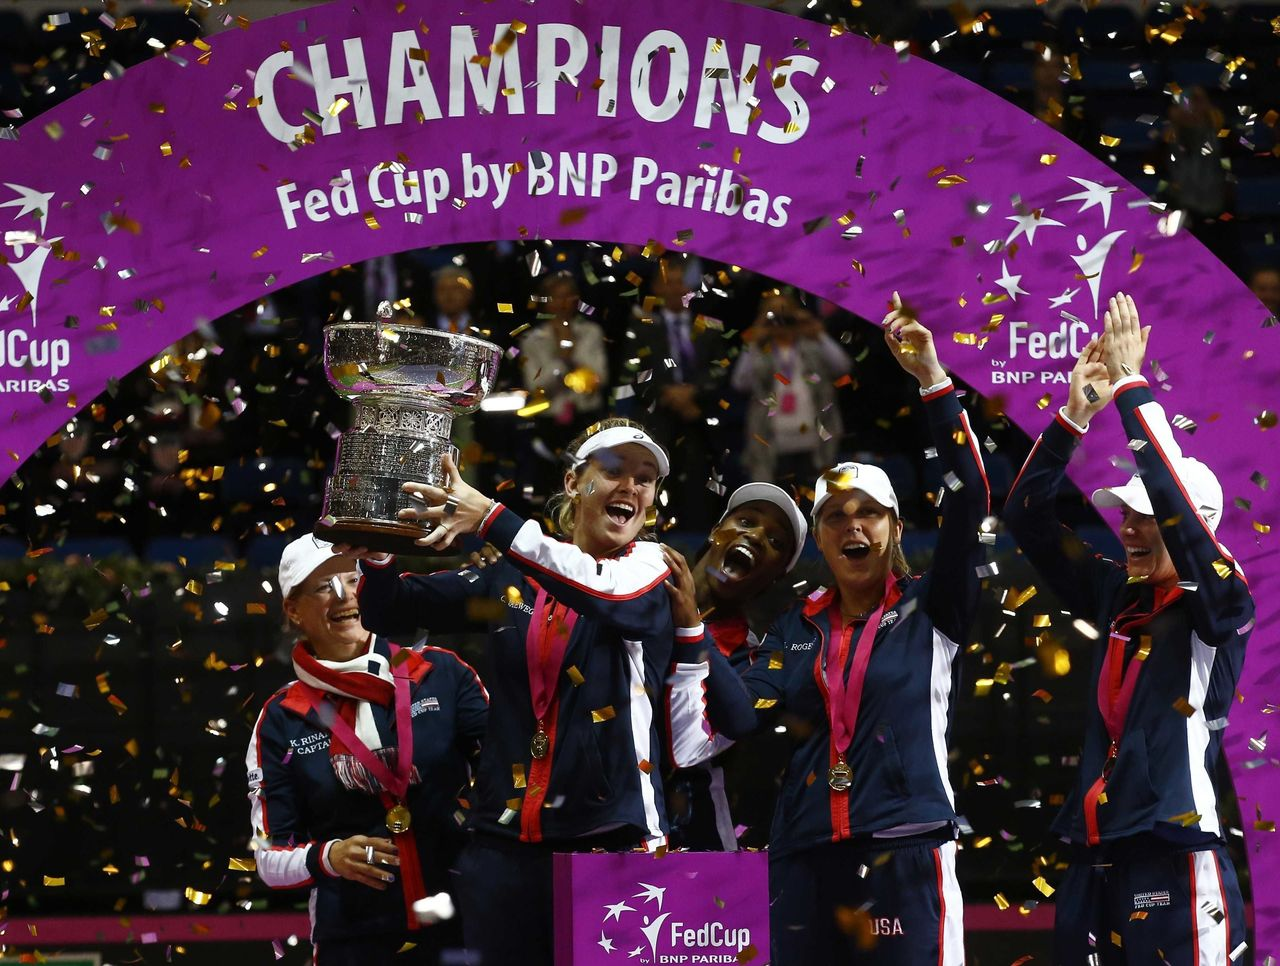 Cropped 2017 11 12t184143z 2021690089 up1edbc1fxibh rtrmadp 3 tennis fedcup final